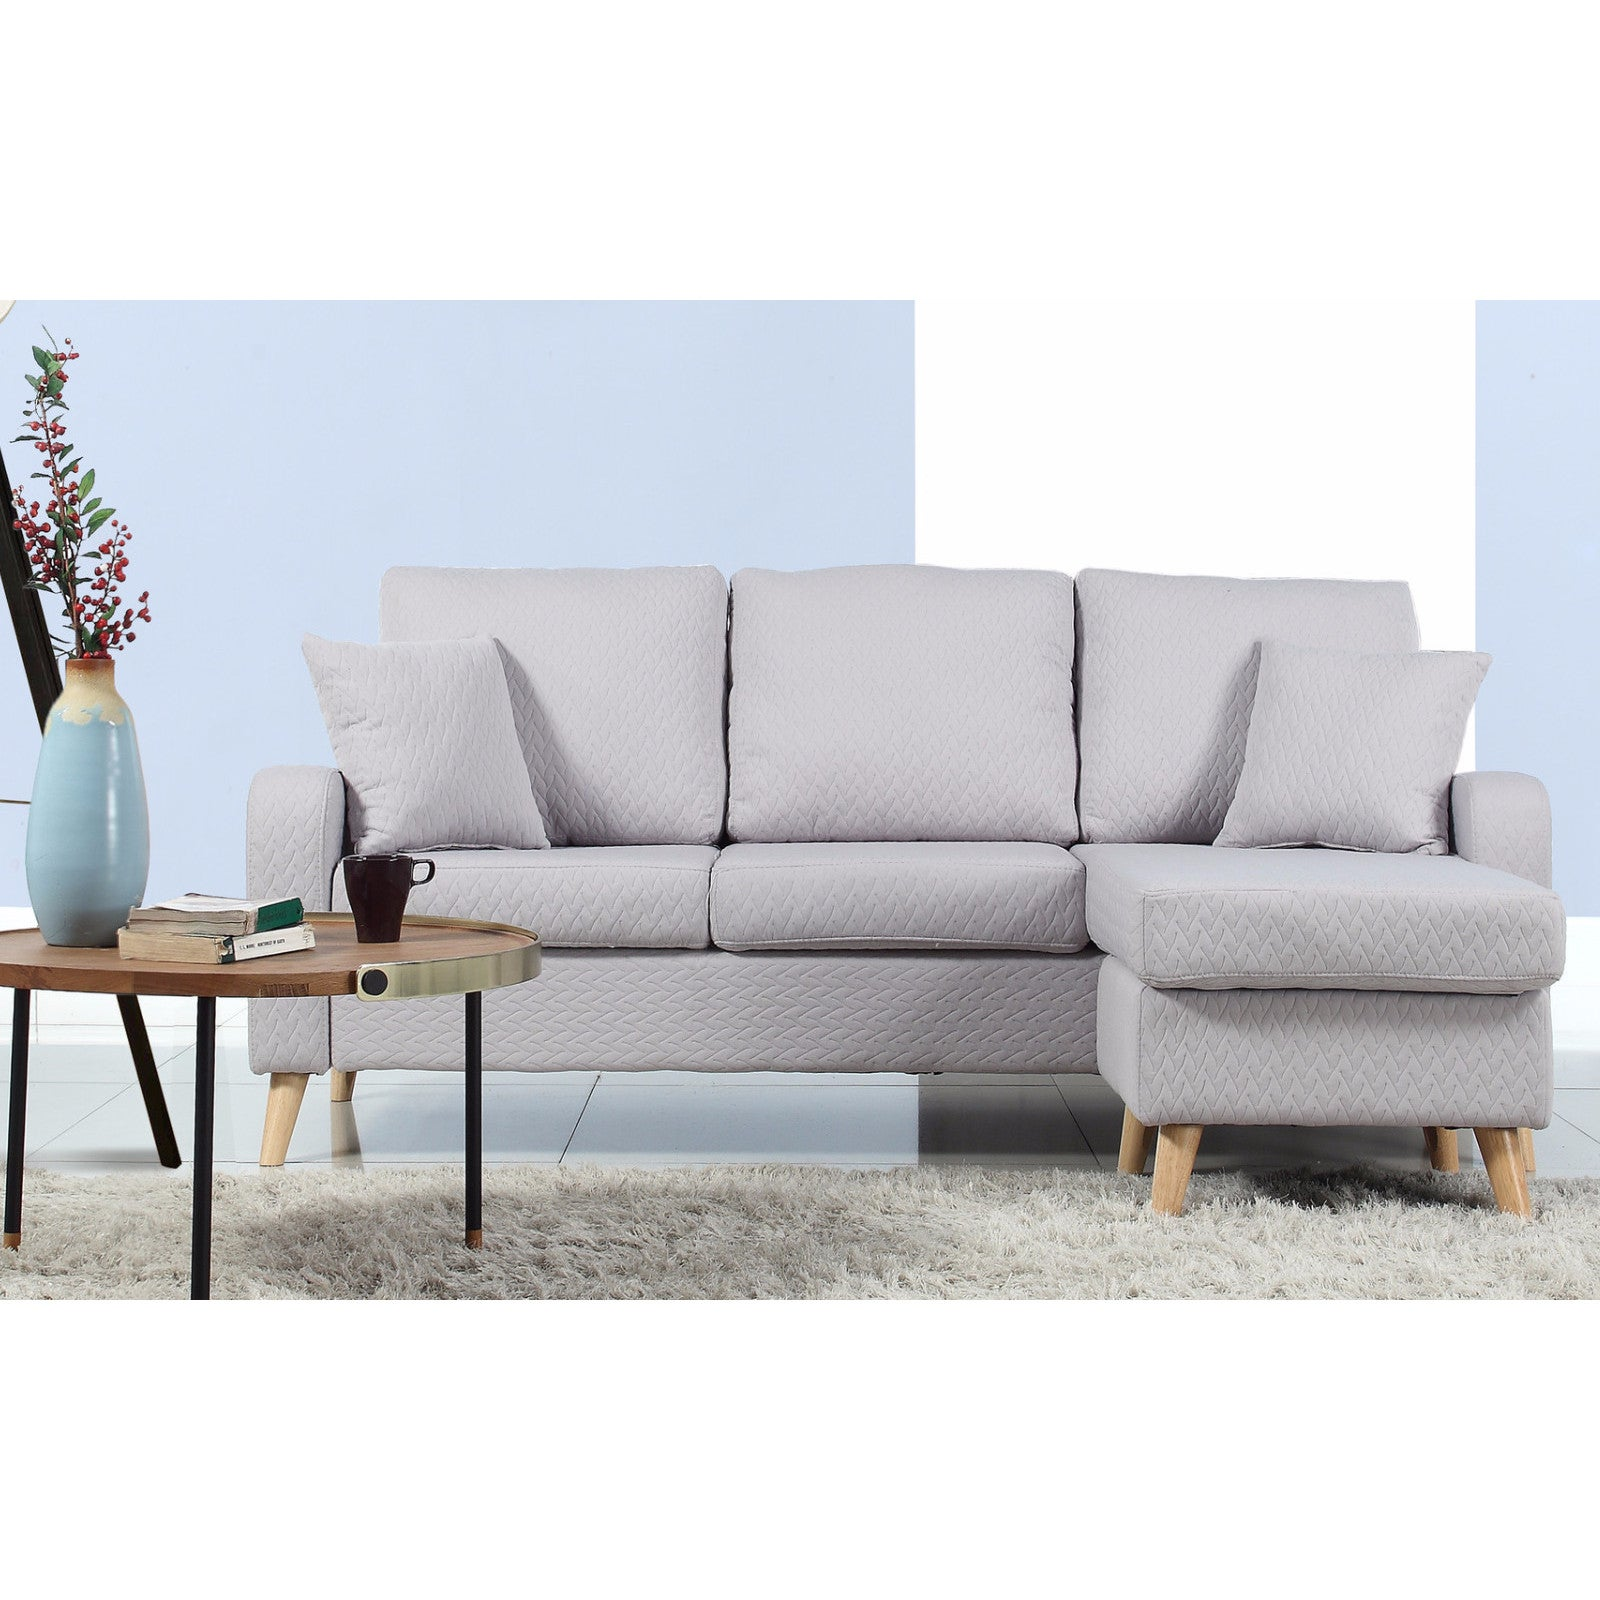 Charmant Shop Mid Century Modern Small Space Sectional Sofa With Reversible Chase    Free Shipping Today   Overstock.com   13096745